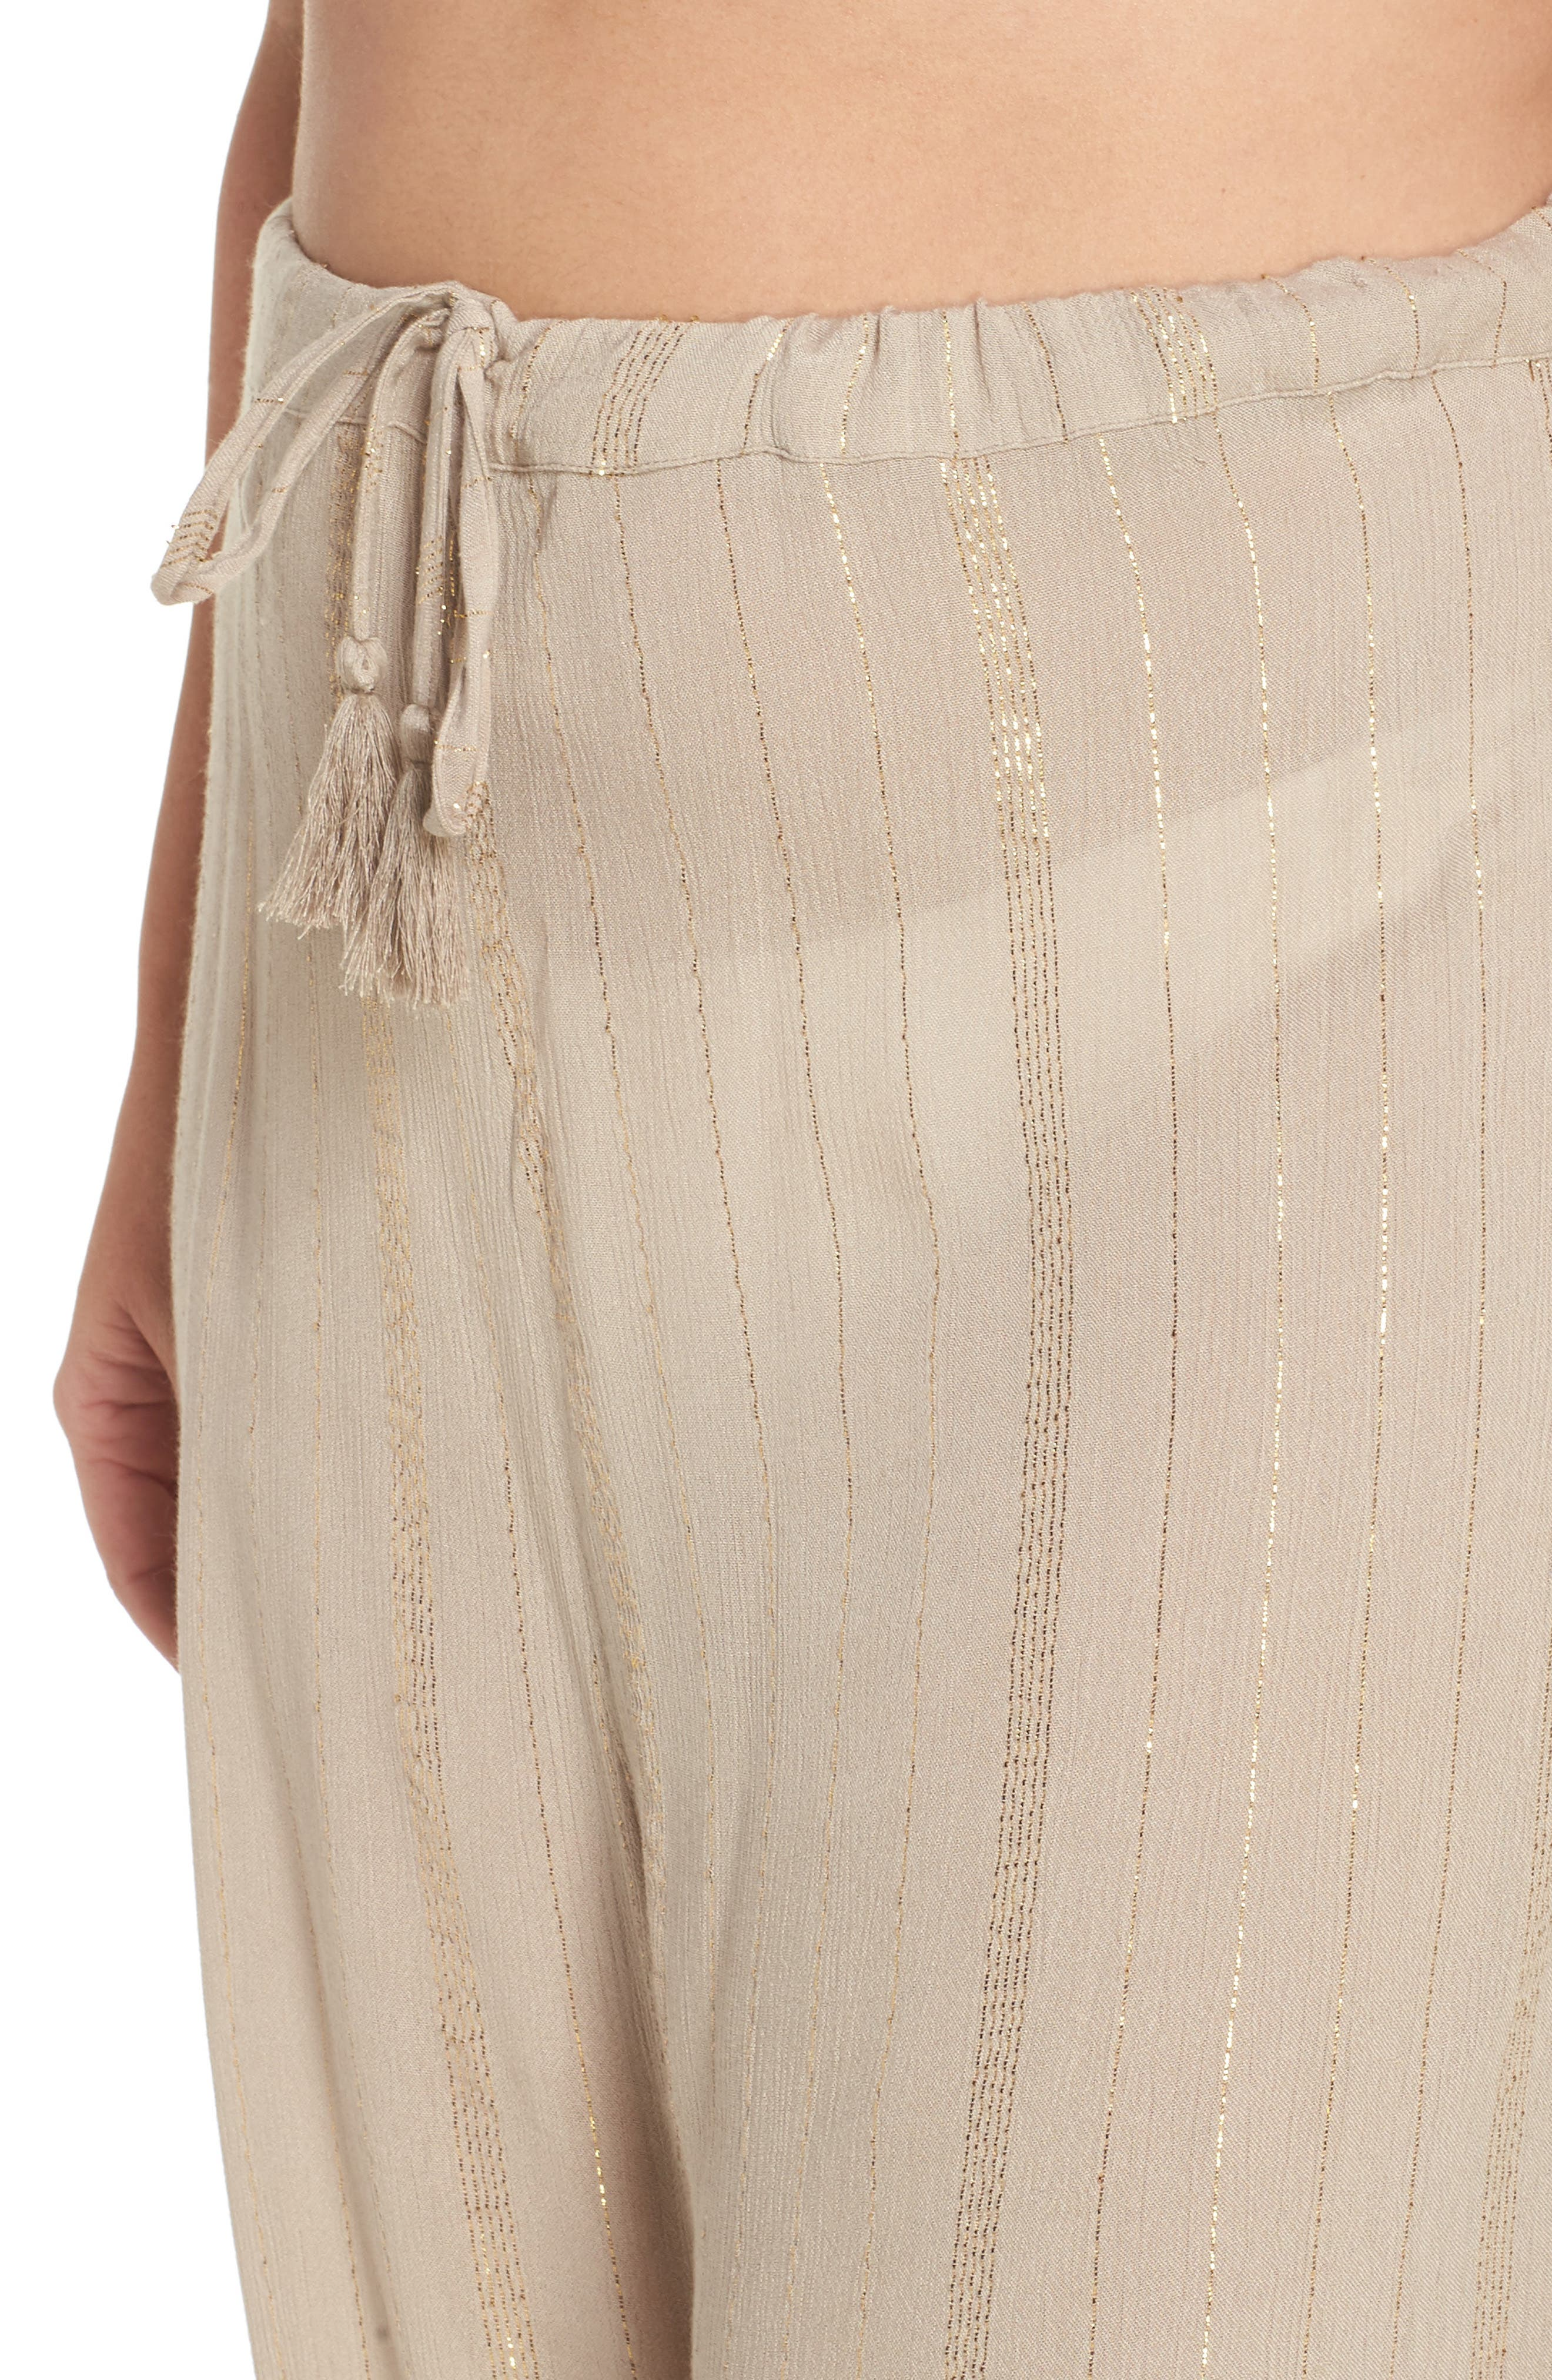 Iris Cover-Up Pants,                             Alternate thumbnail 4, color,                             Taupe/ Gold